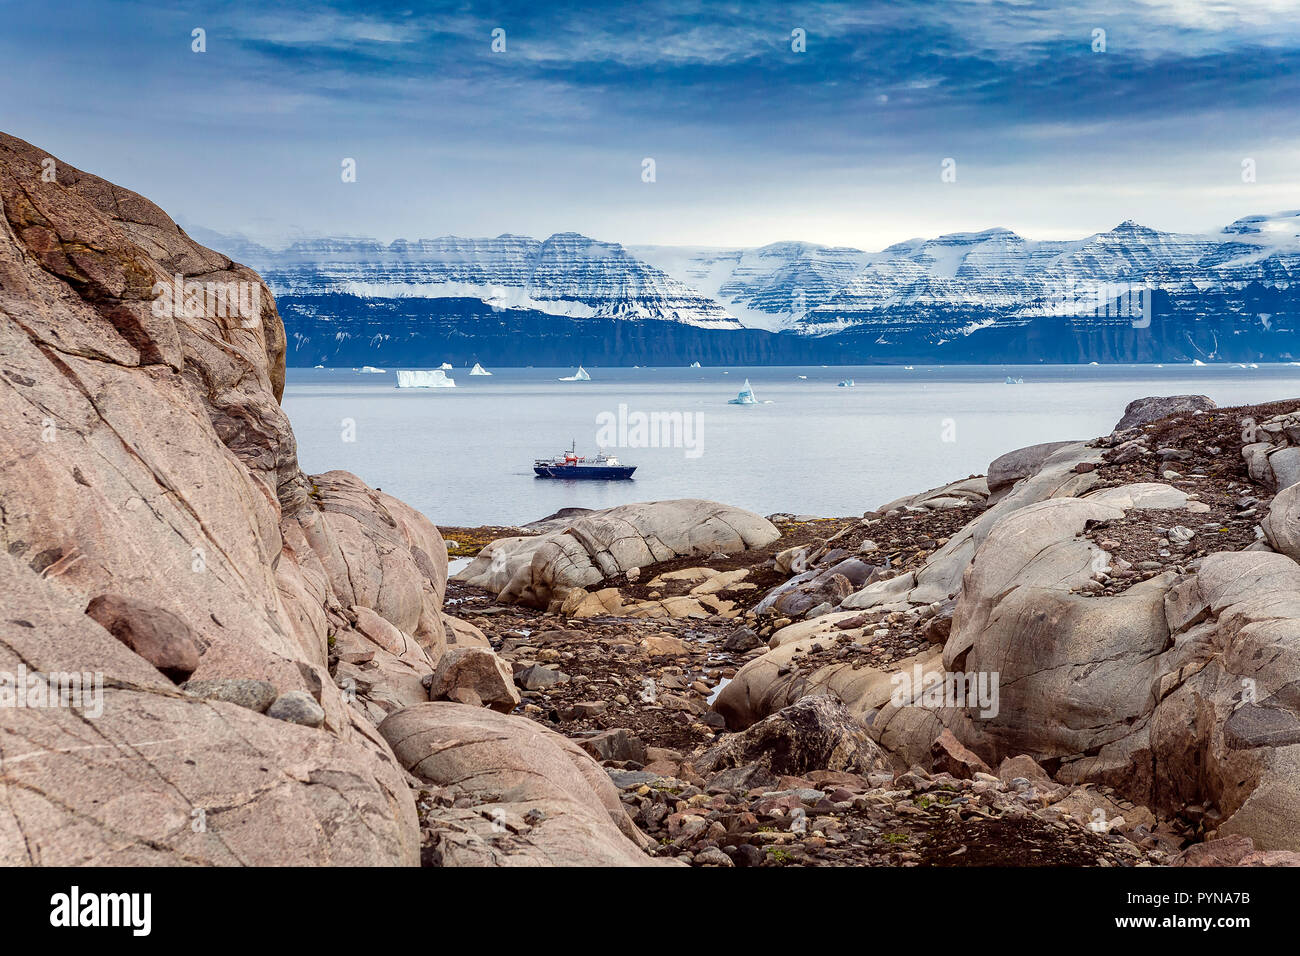 Expeditions ship MS Ortelius at a fjord, Greenland, North polar ocean, Arctic - Stock Image